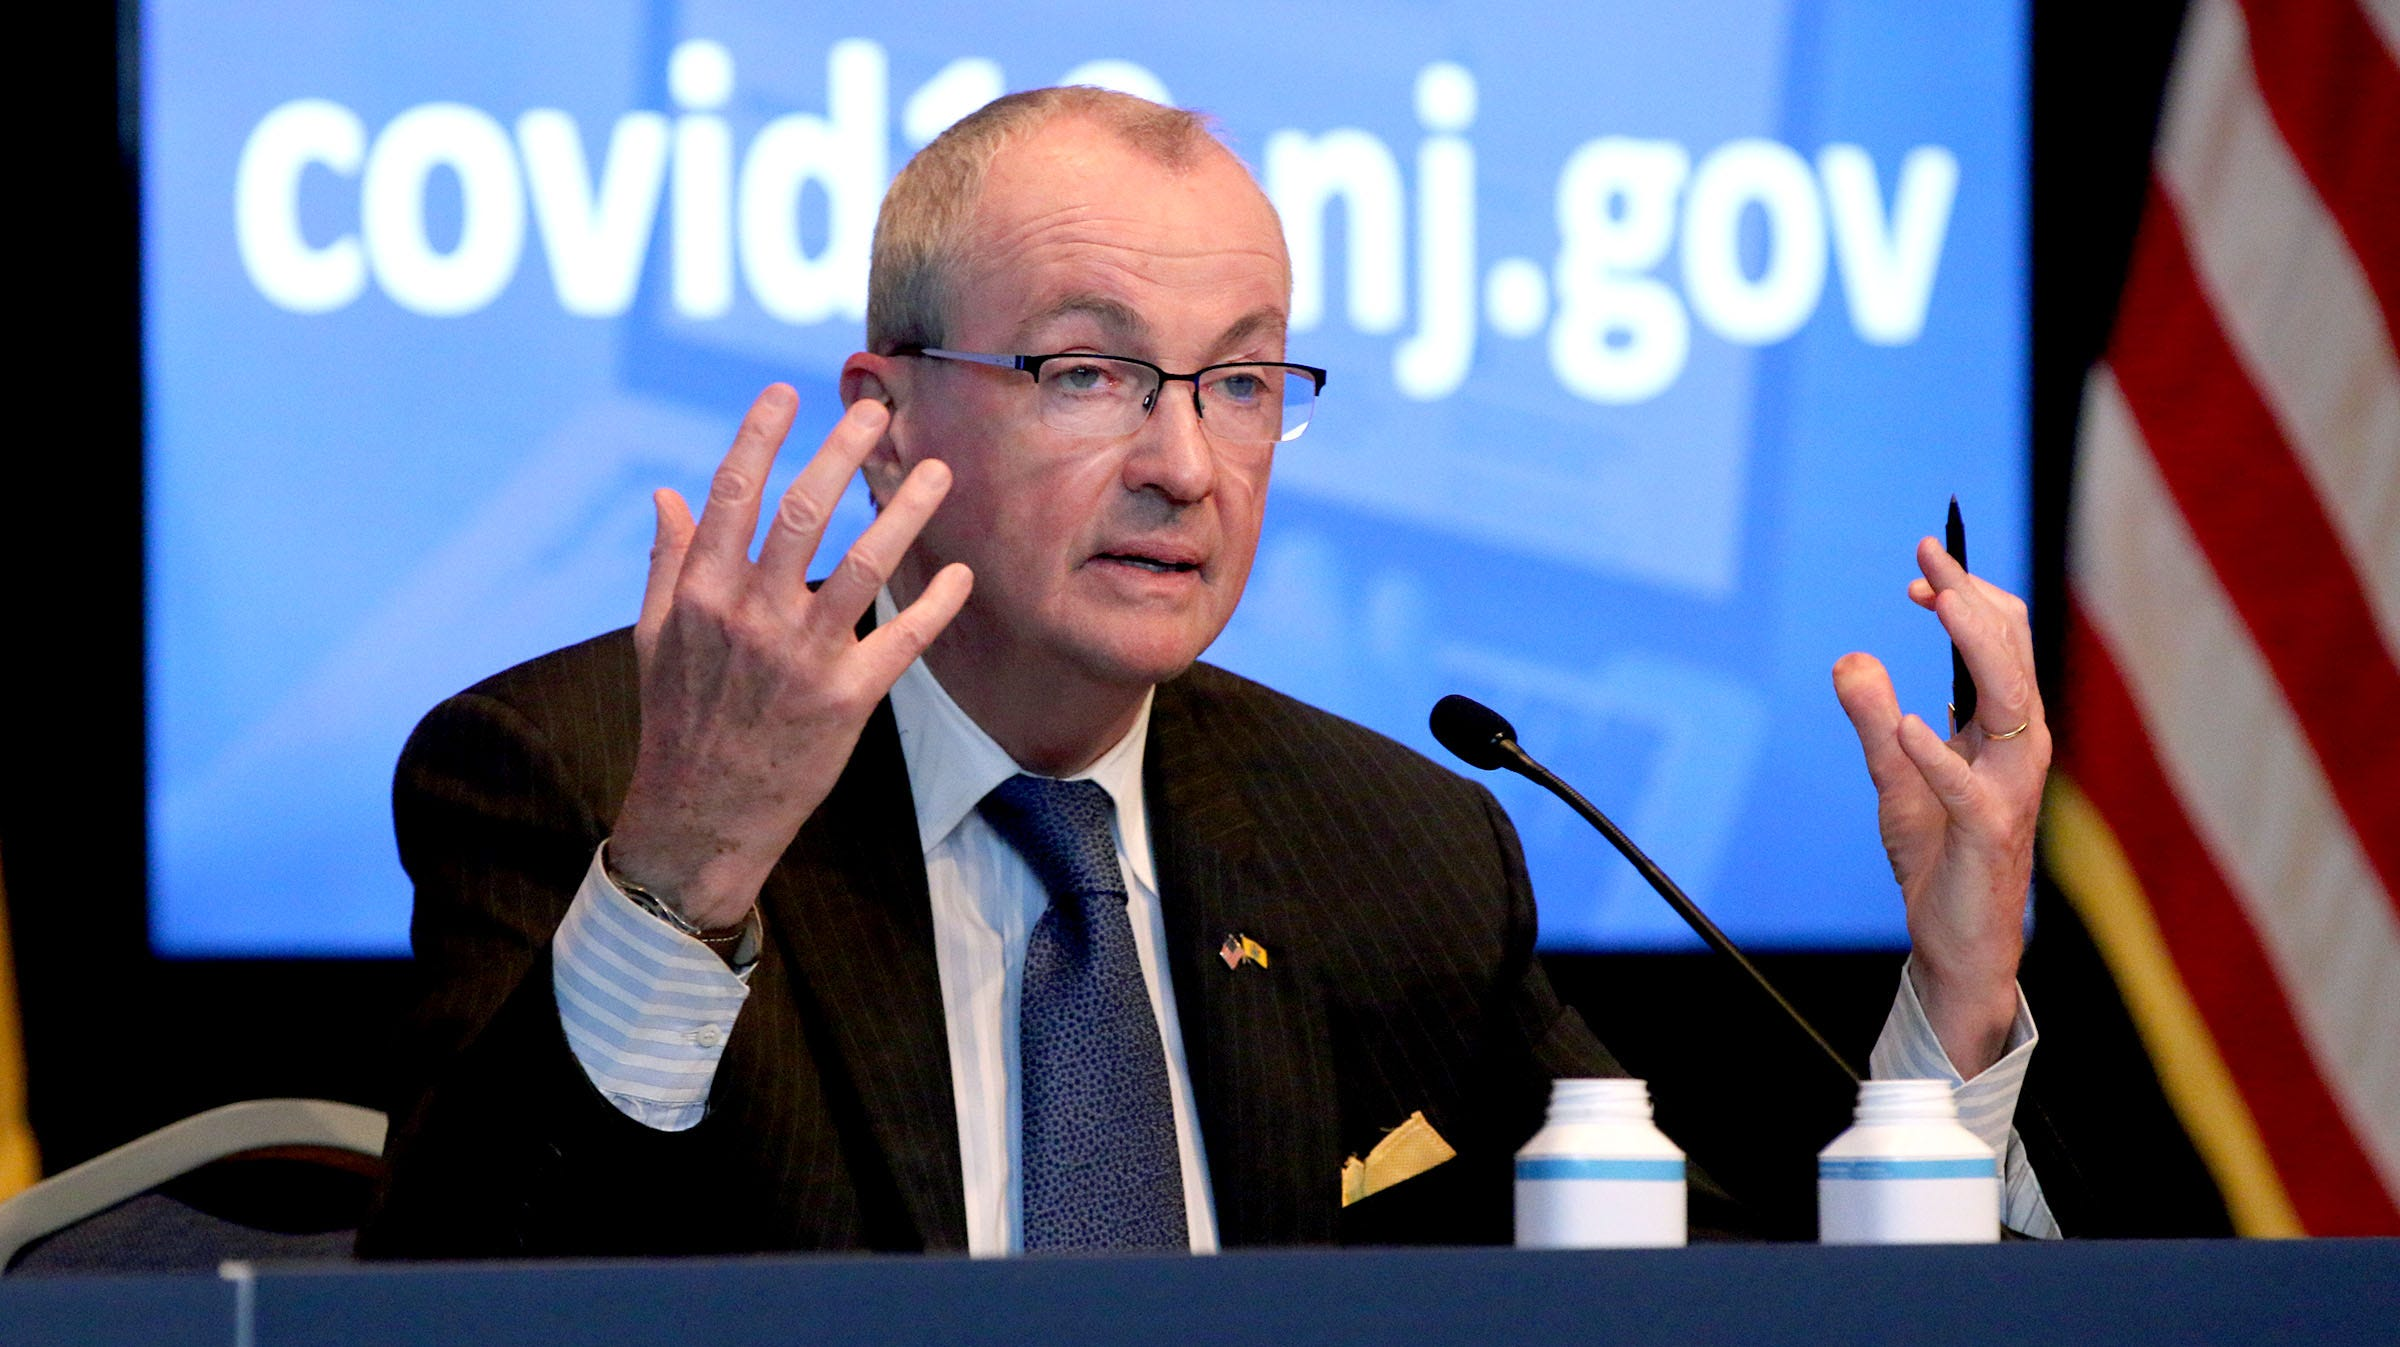 NJ Governor Phil Murphy said he is still awaiting federal guidance on whether he can spend federal stimulus money to help undocumented workers.